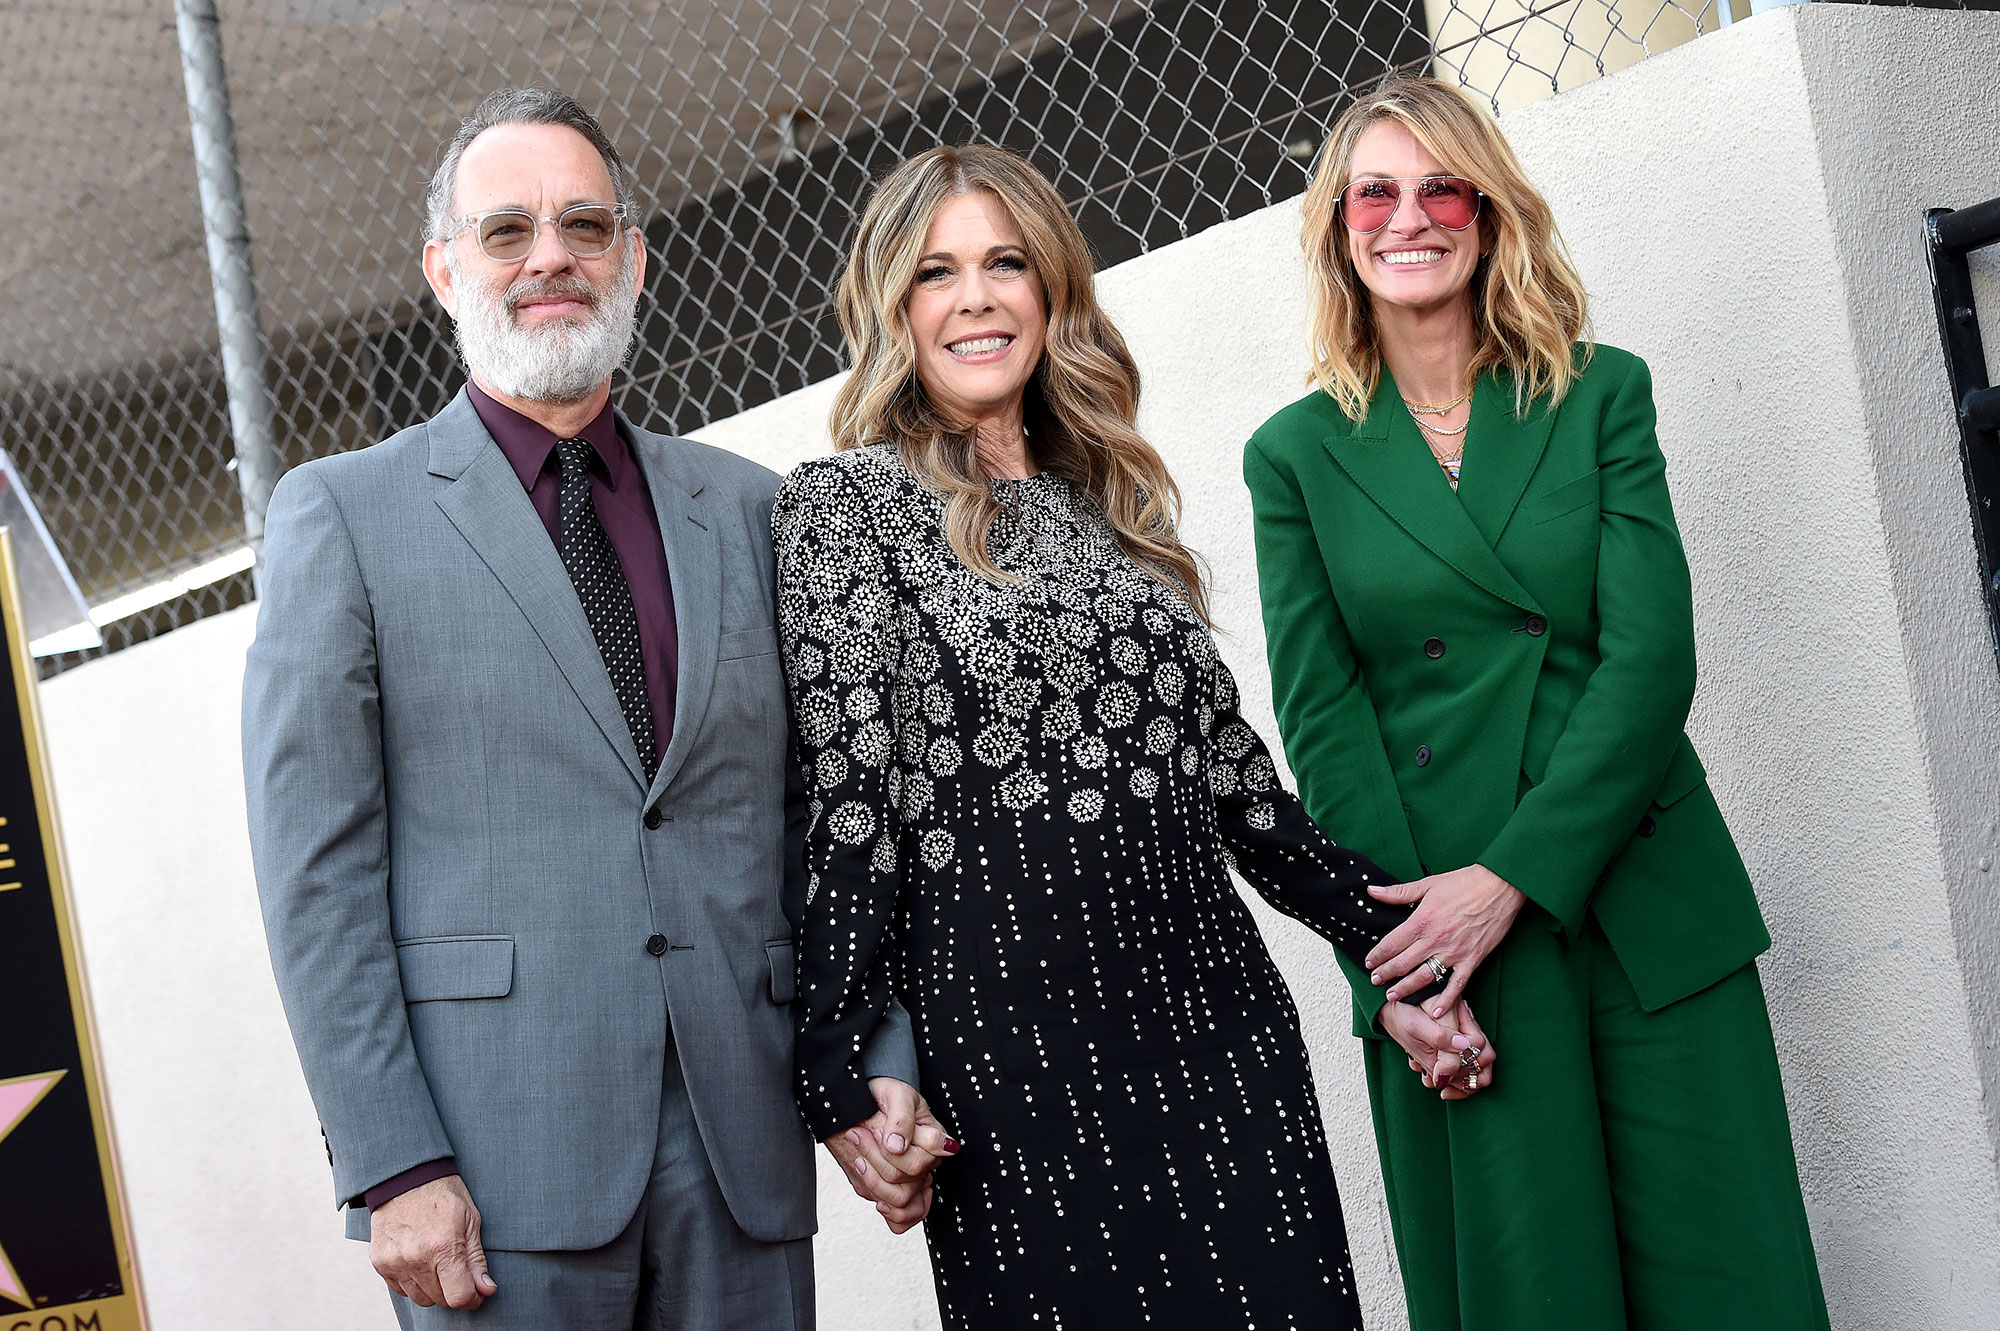 Julia Roberts Calls Tom Hanks 'Super Hot': 'Now Everybody Knows' - the Hollywood Walk of Fame on March 29, 2019 in Hollywood, California.